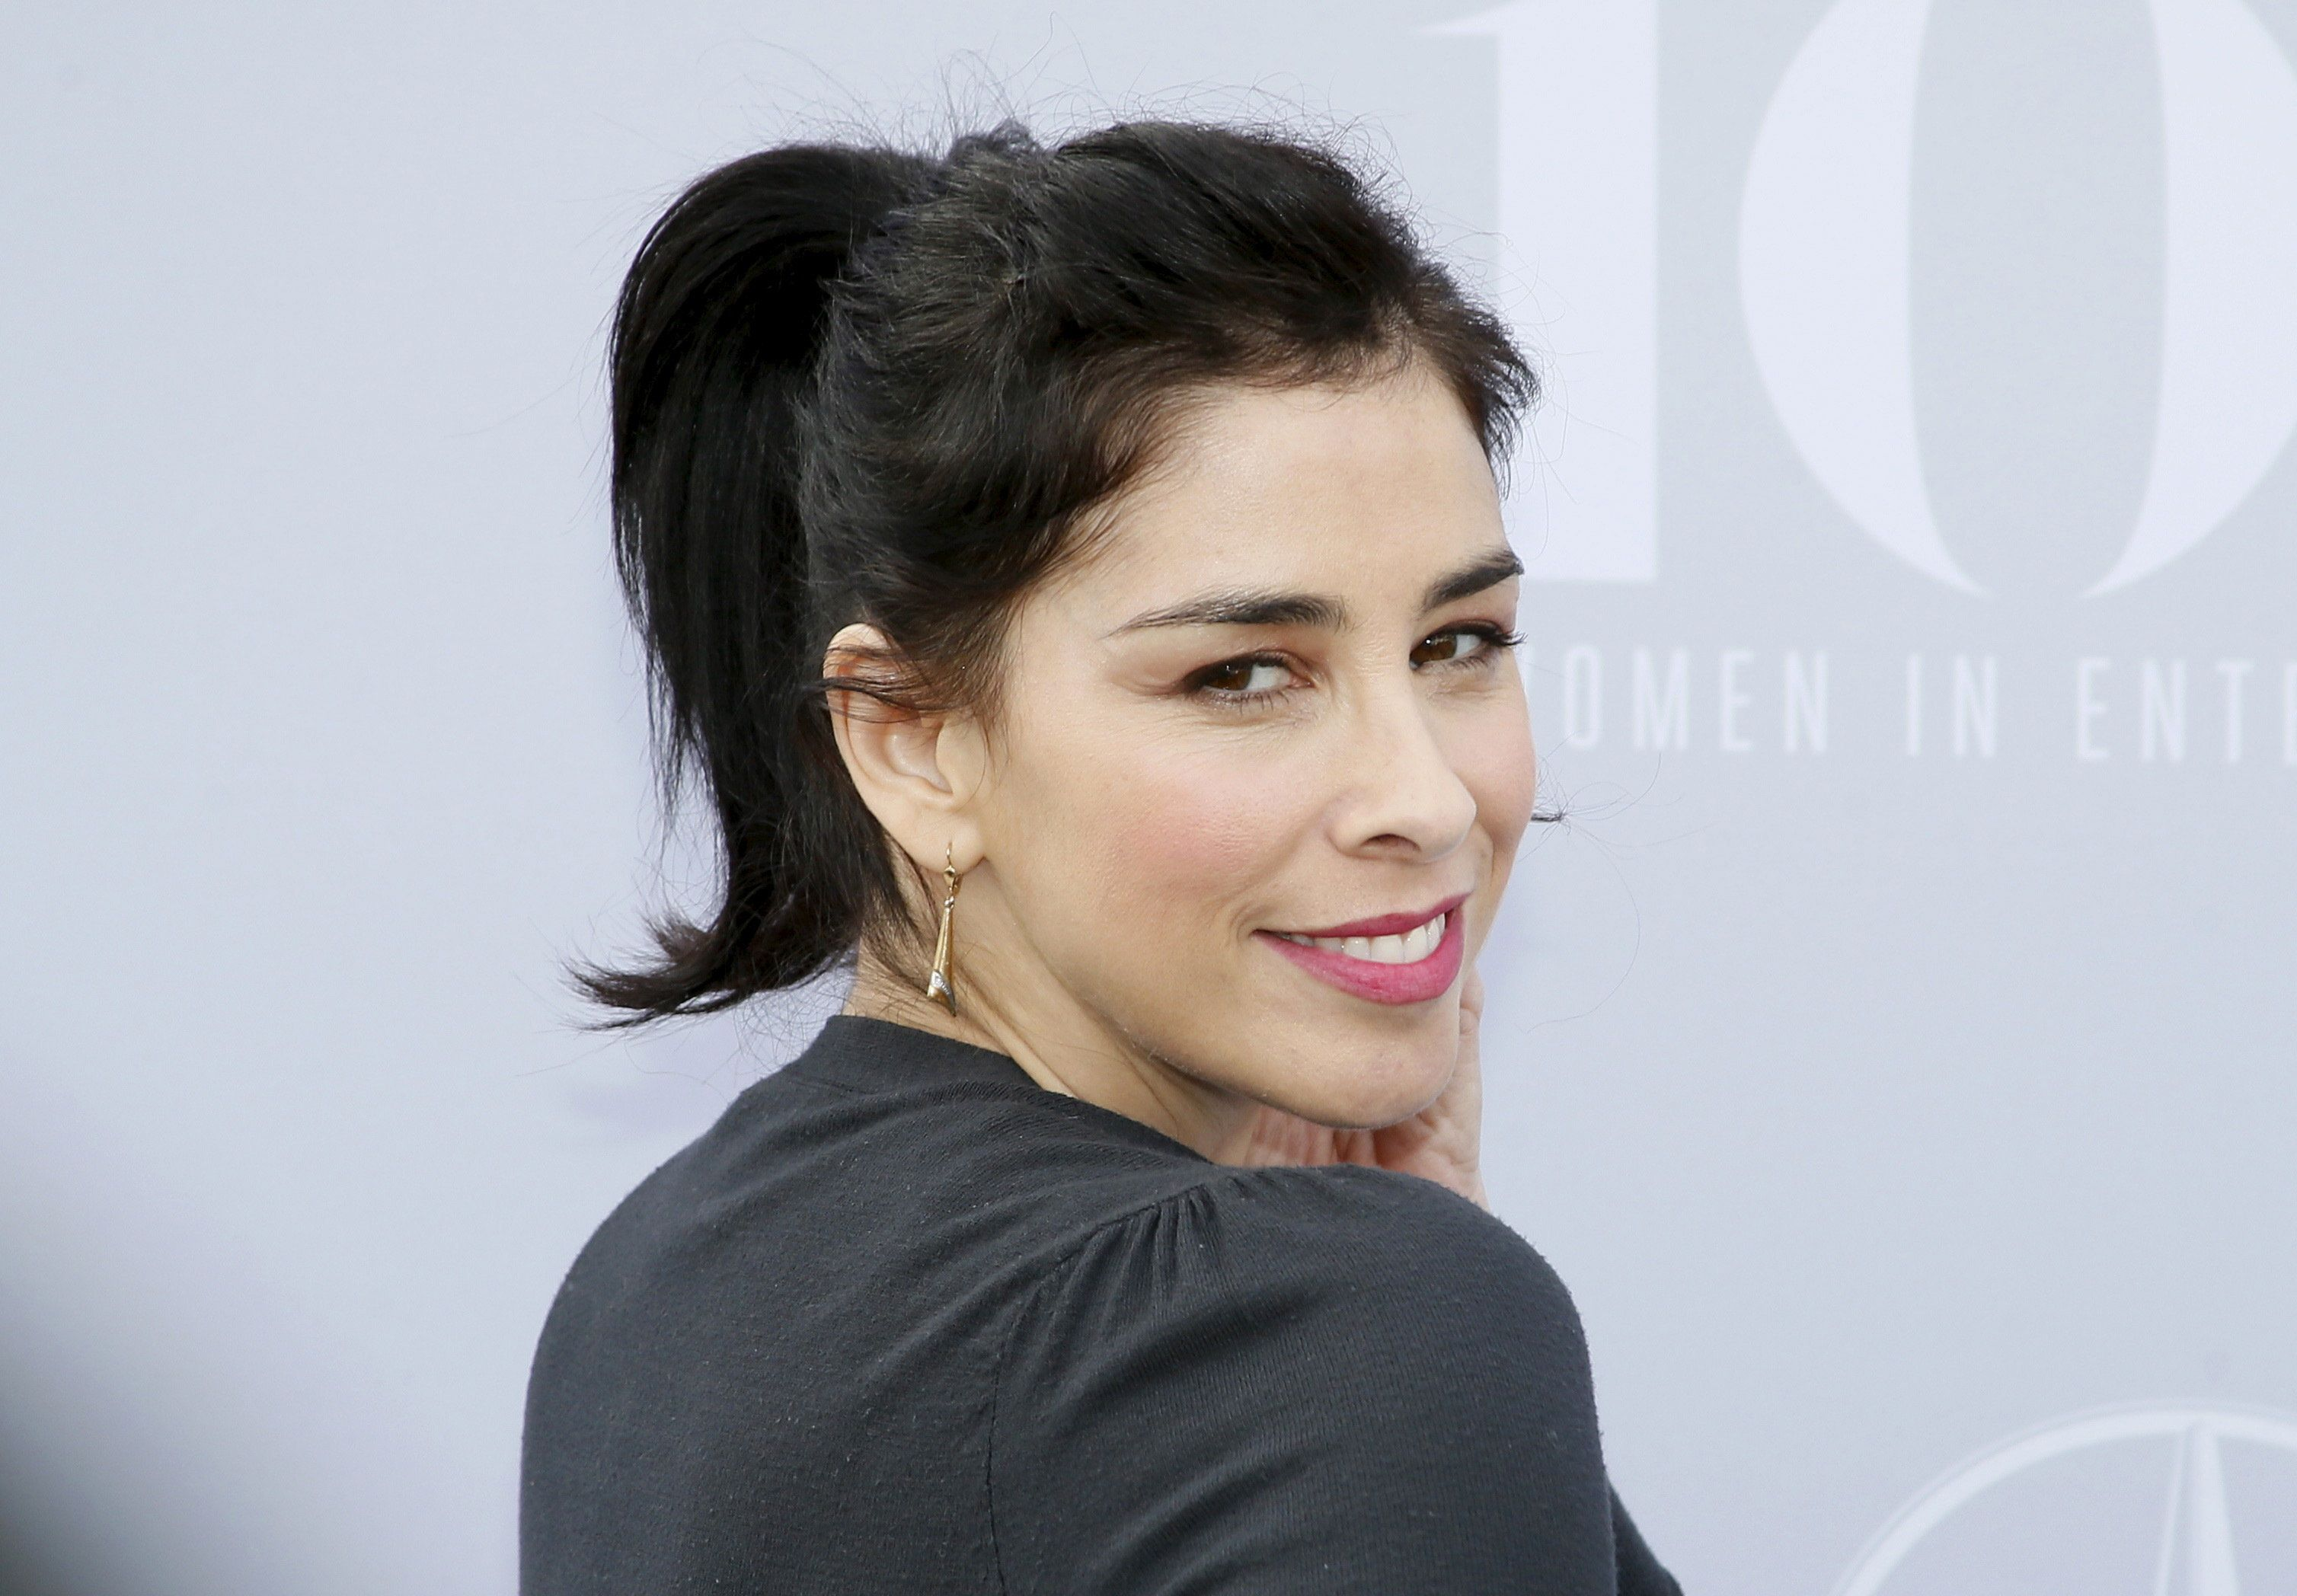 Comedian Sarah Silverman poses at The Hollywood Reporter's Annual Women in Entertainment Breakfast in Los Angeles, California December 9, 2015. REUTERS/Danny Moloshok